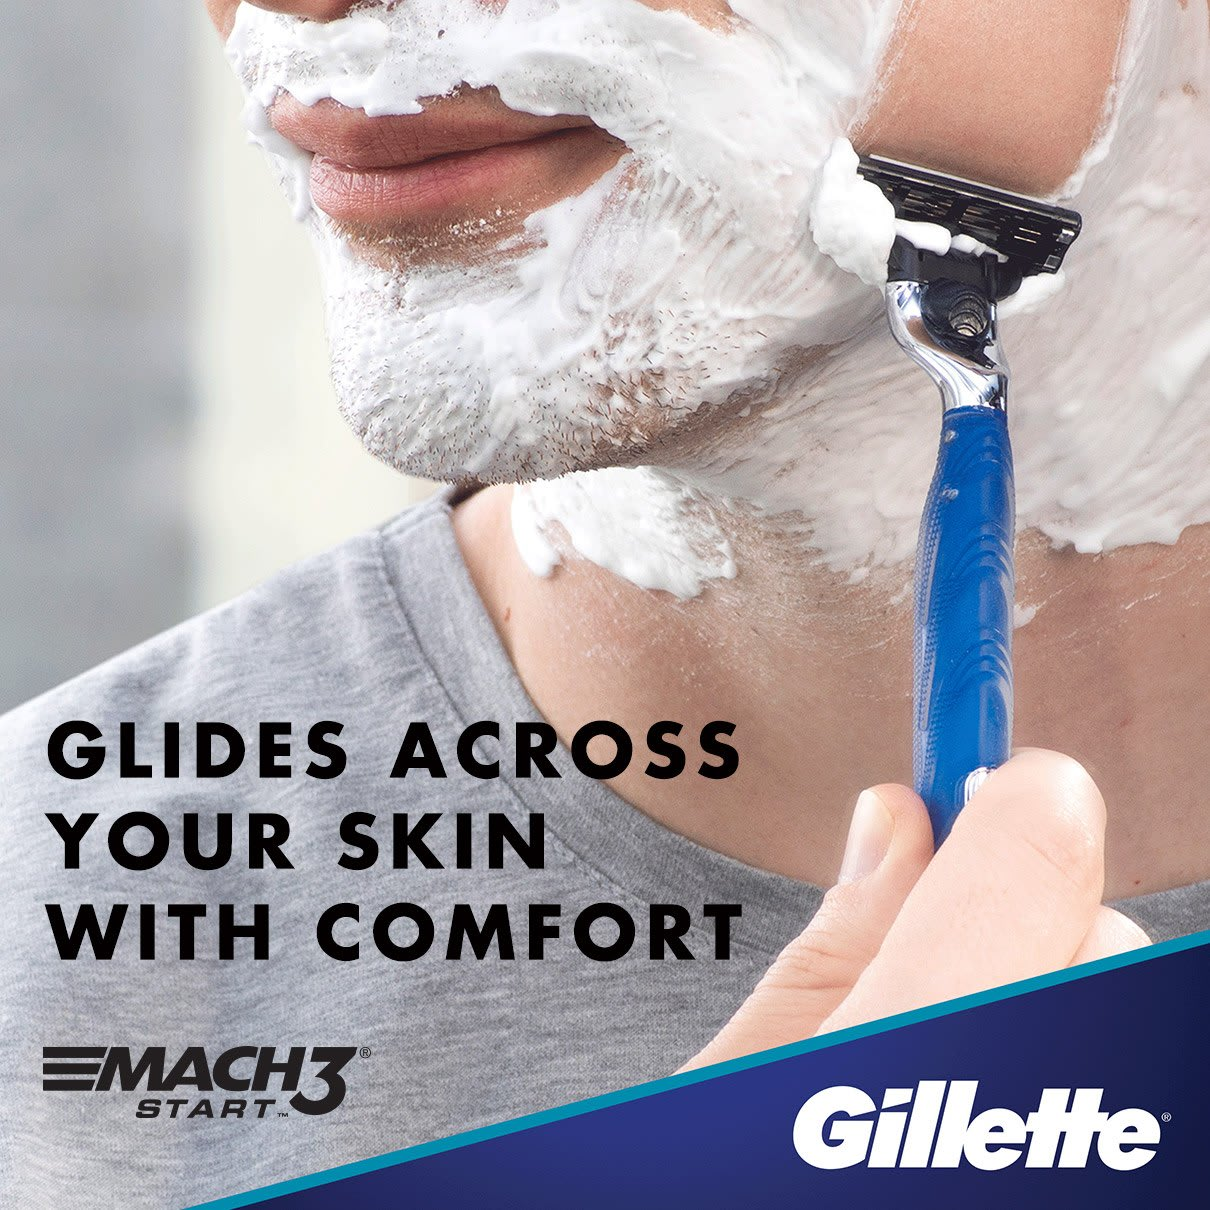 Glides across your skin with comfort